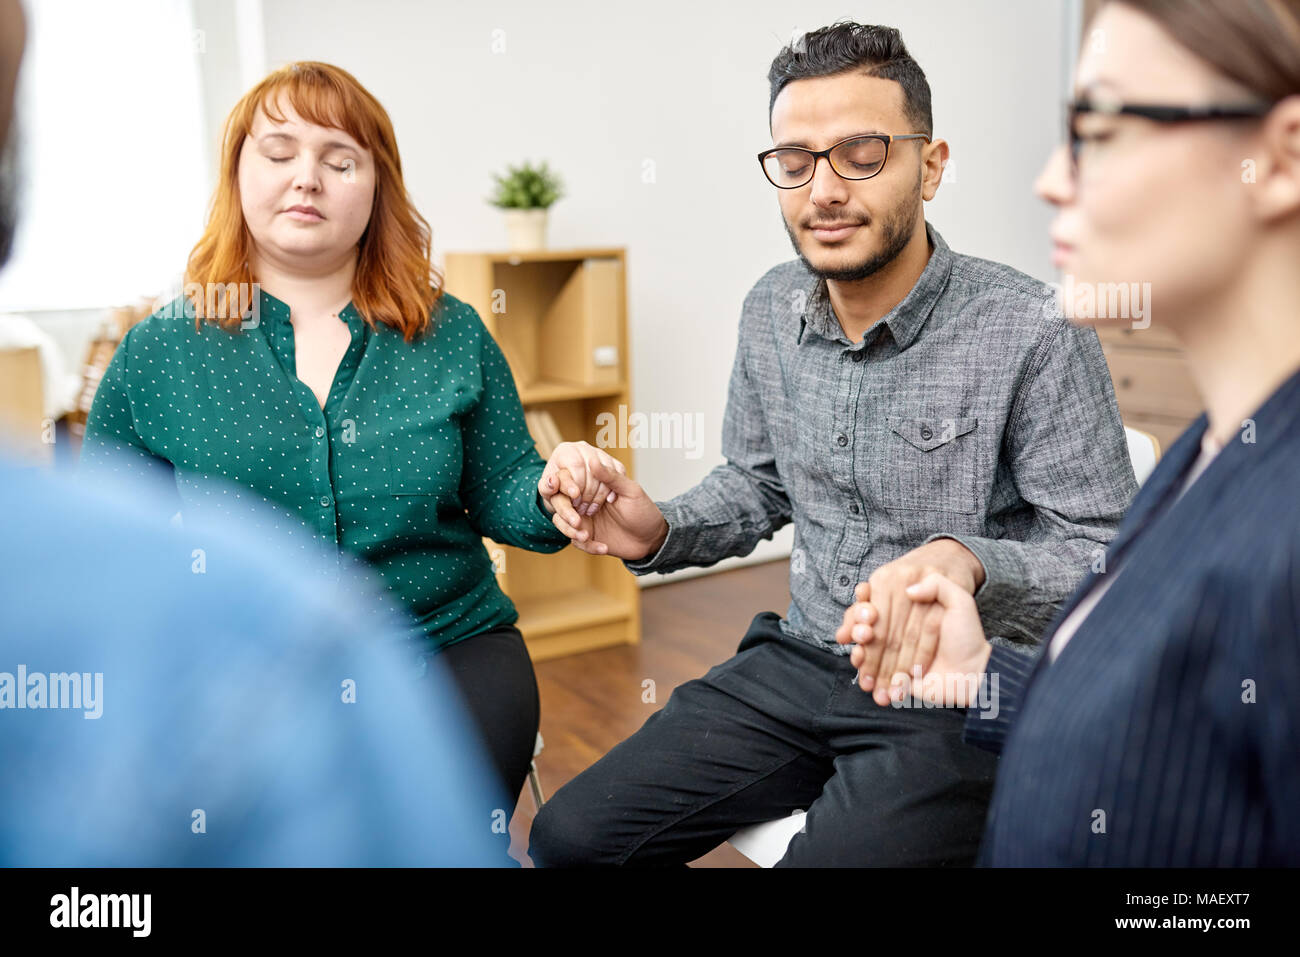 Participants of Group Therapy Session - Stock Image